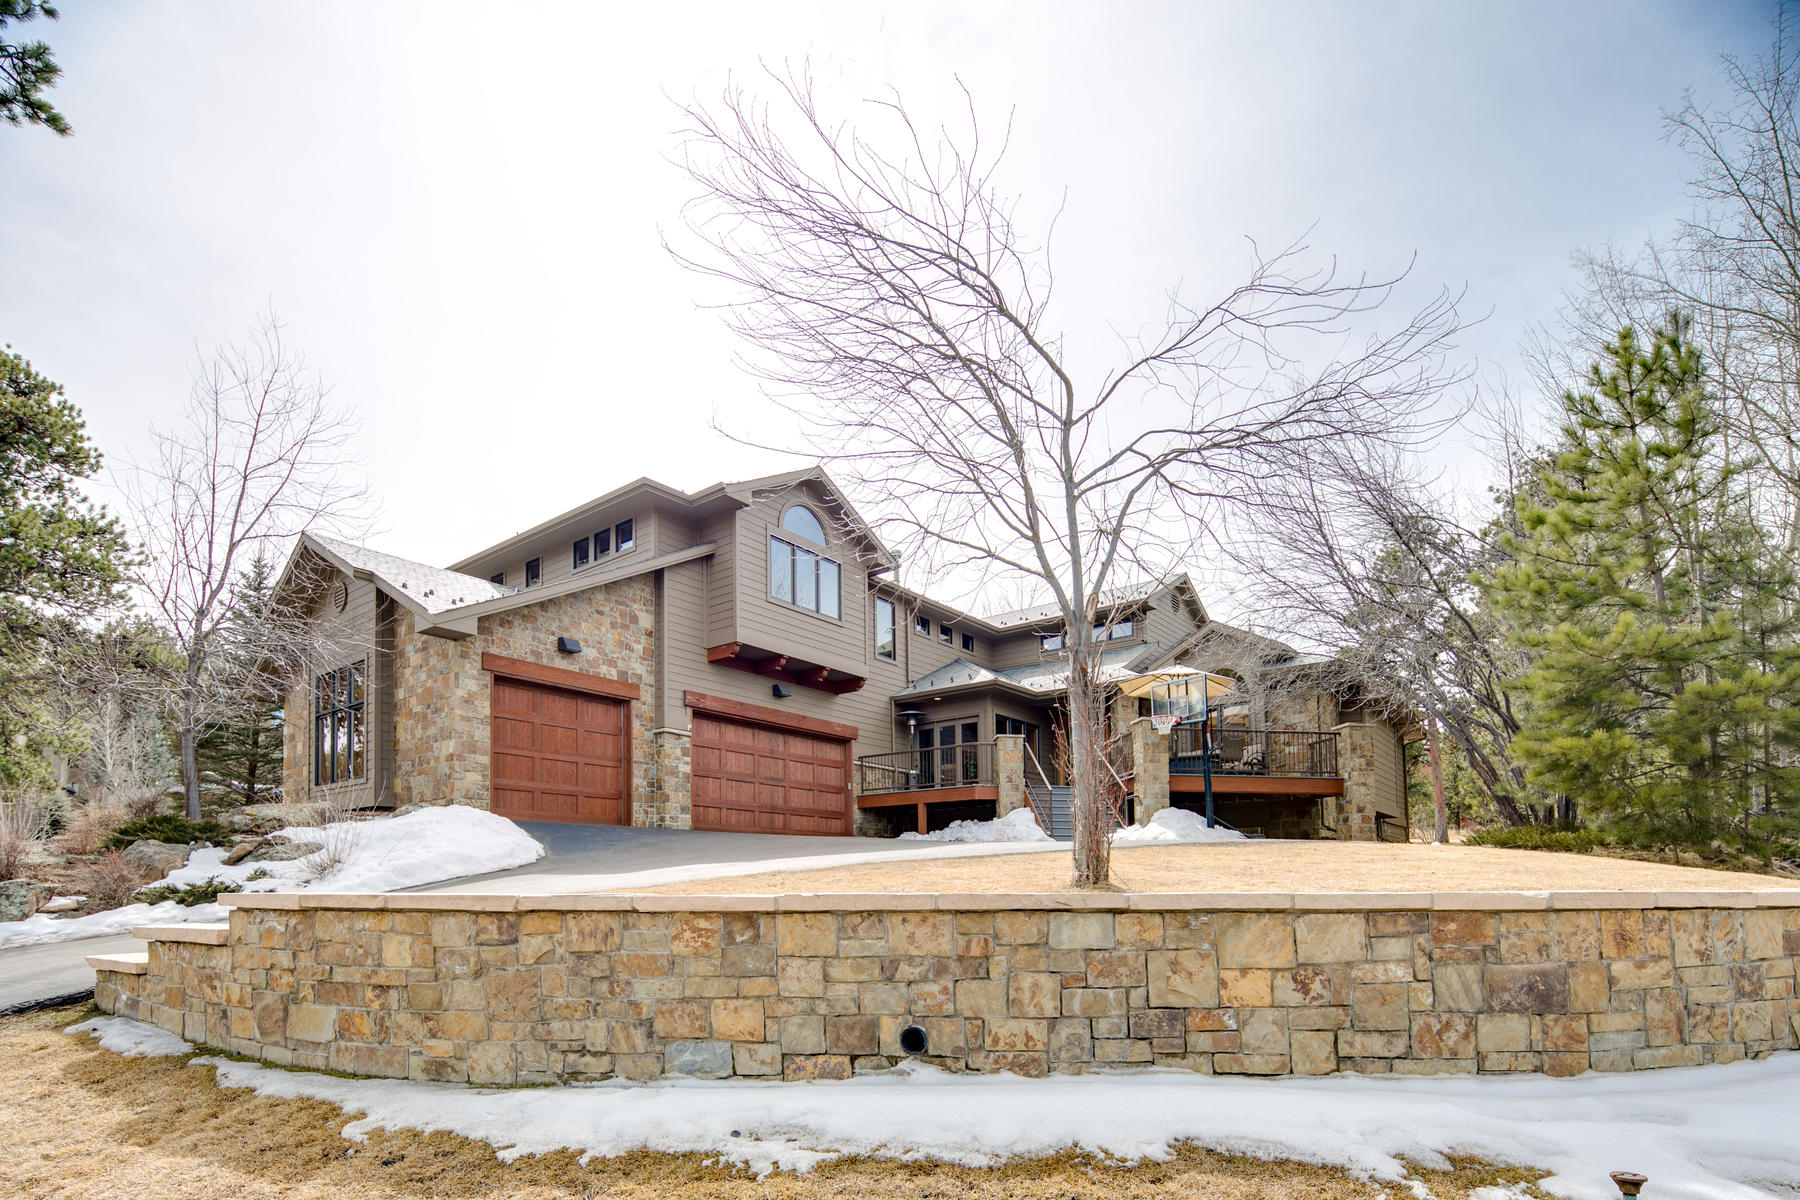 Single Family Home for Active at Sun-Filled Mountain Contemporary in Gated Golf Community 2090 Island Lane Evans, Colorado 80439 United States